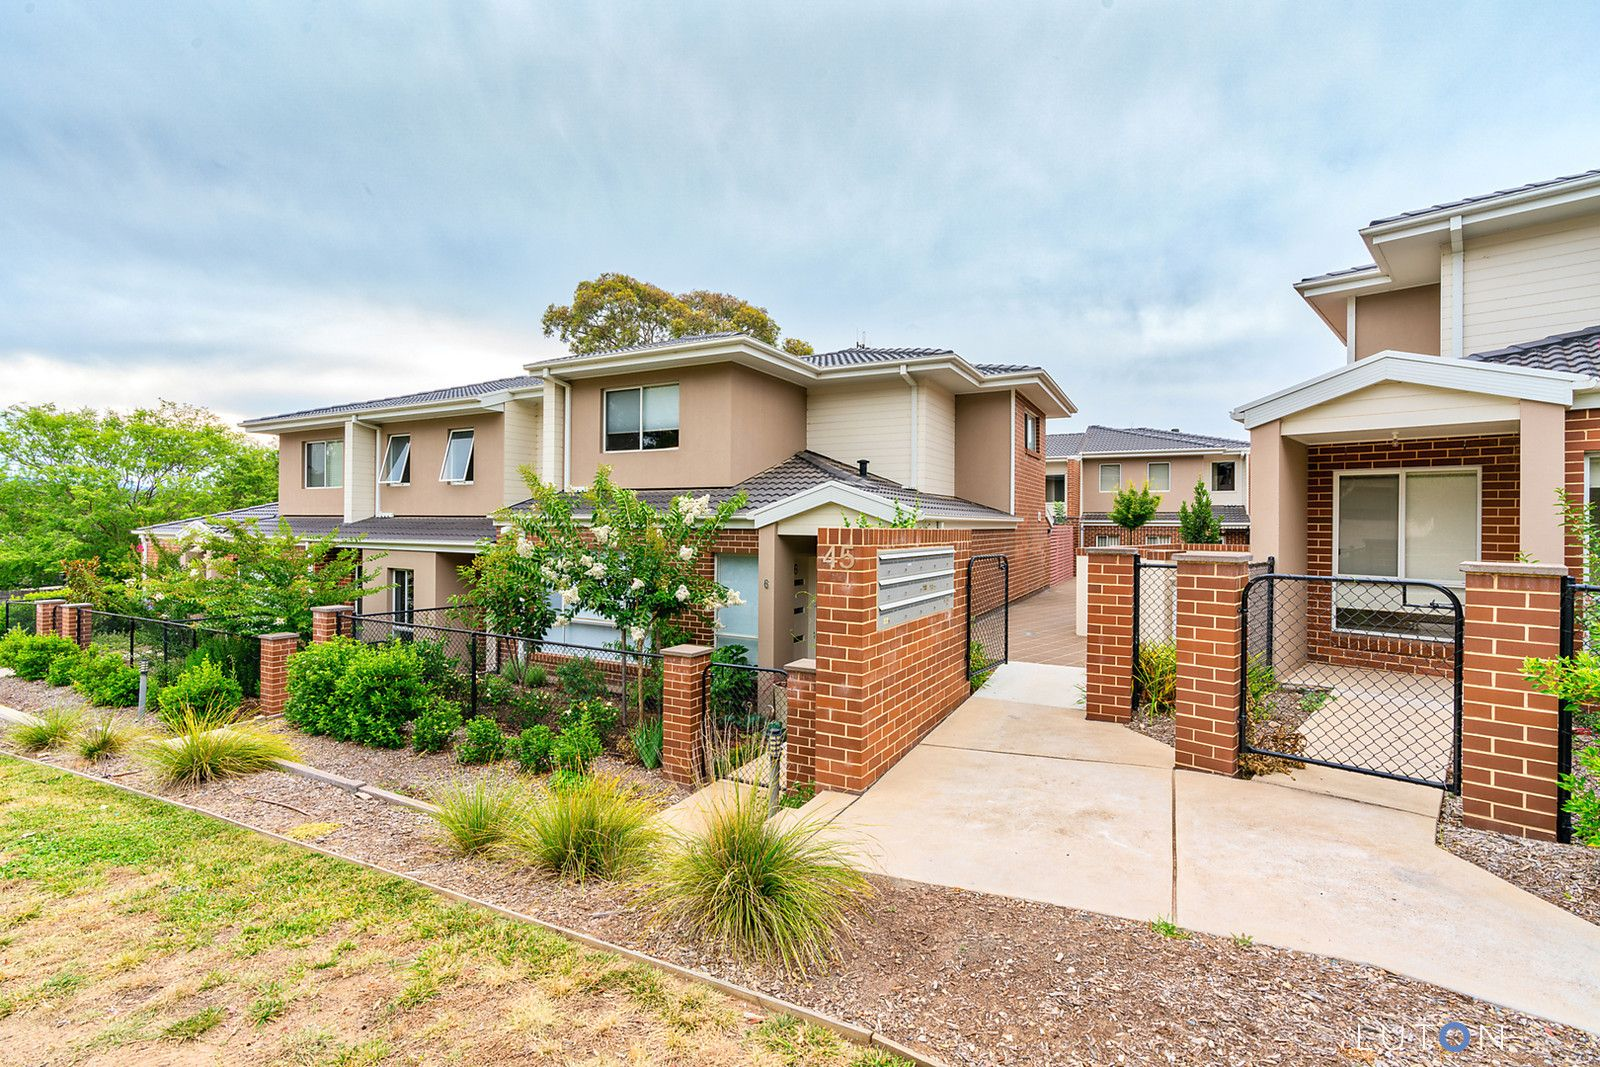 16/45 Enderby Street, Mawson ACT 2607, Image 0